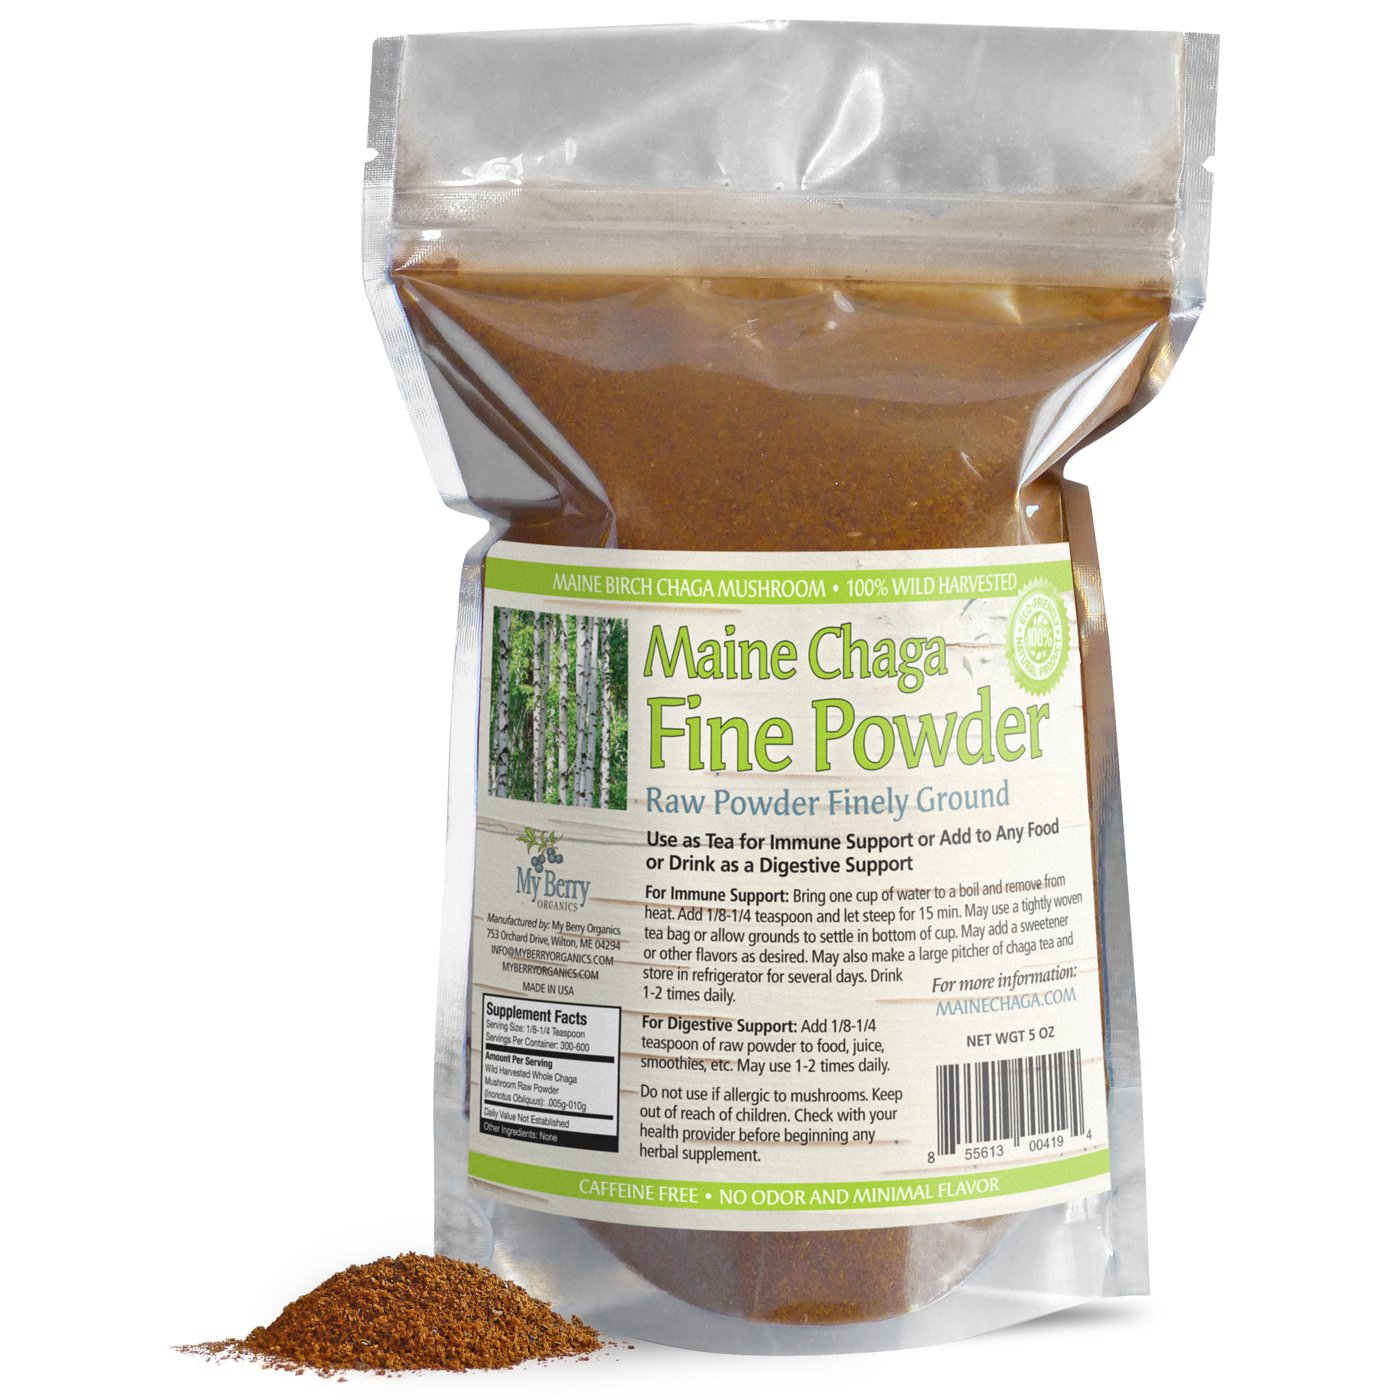 Maine USA Organic & Wild Harvested Raw Chaga Mushroom Fine Powder, 5oz, 300+Servings